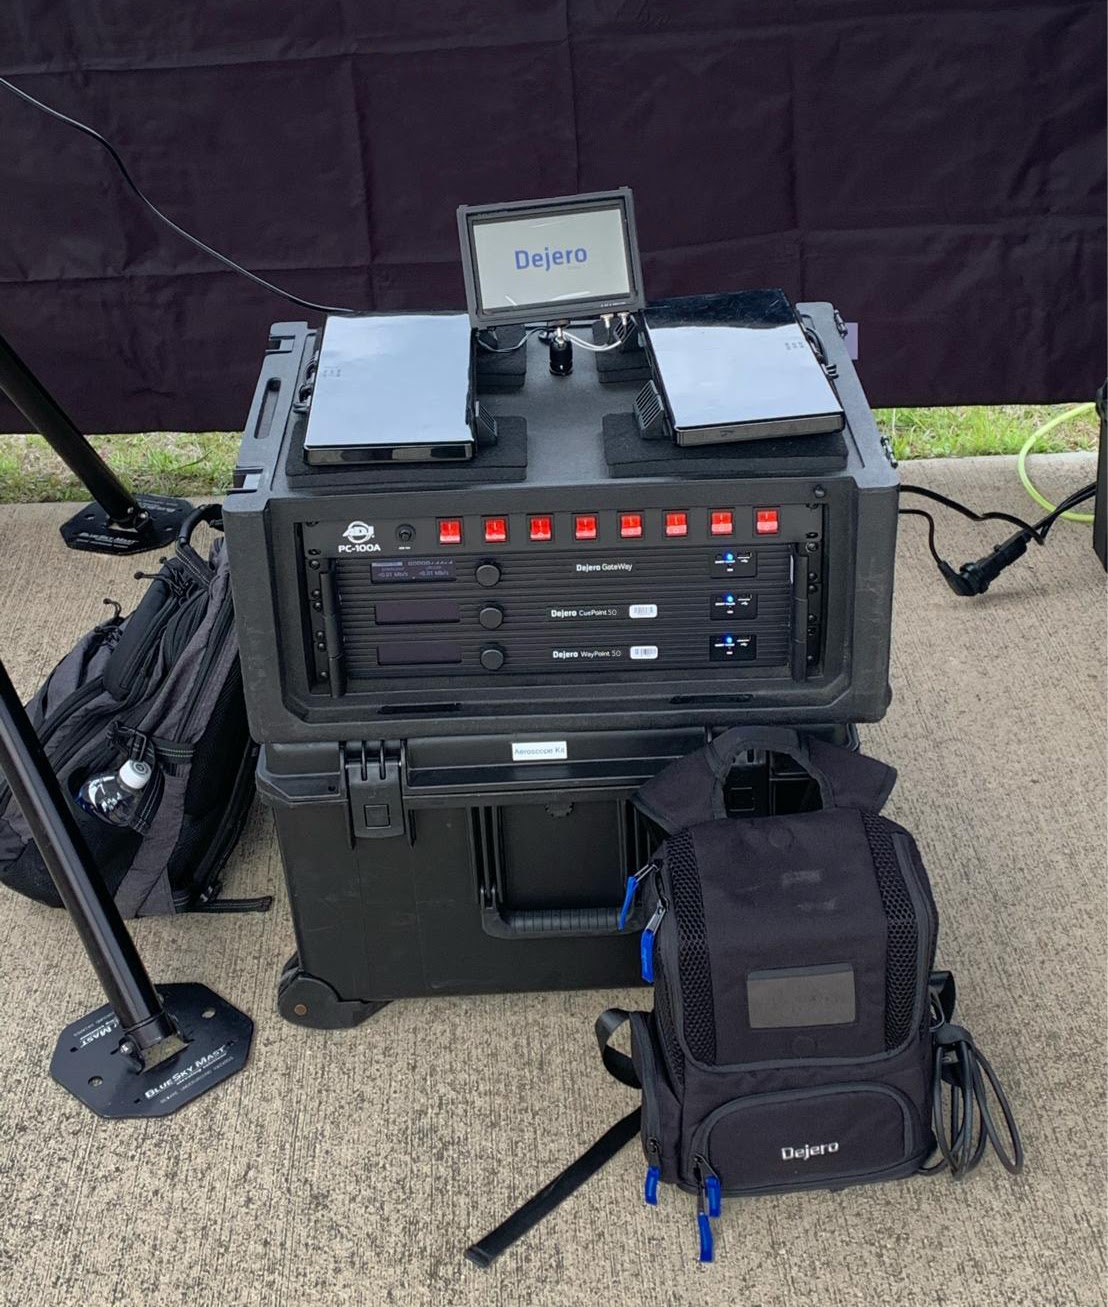 A GateWay M series network aggregation device can be combined with other equipment in a portable flyaway kit to provide resilient connectivity for remote production, disaster recovery, and business continuity. Image courtesy of  Jared Brody.